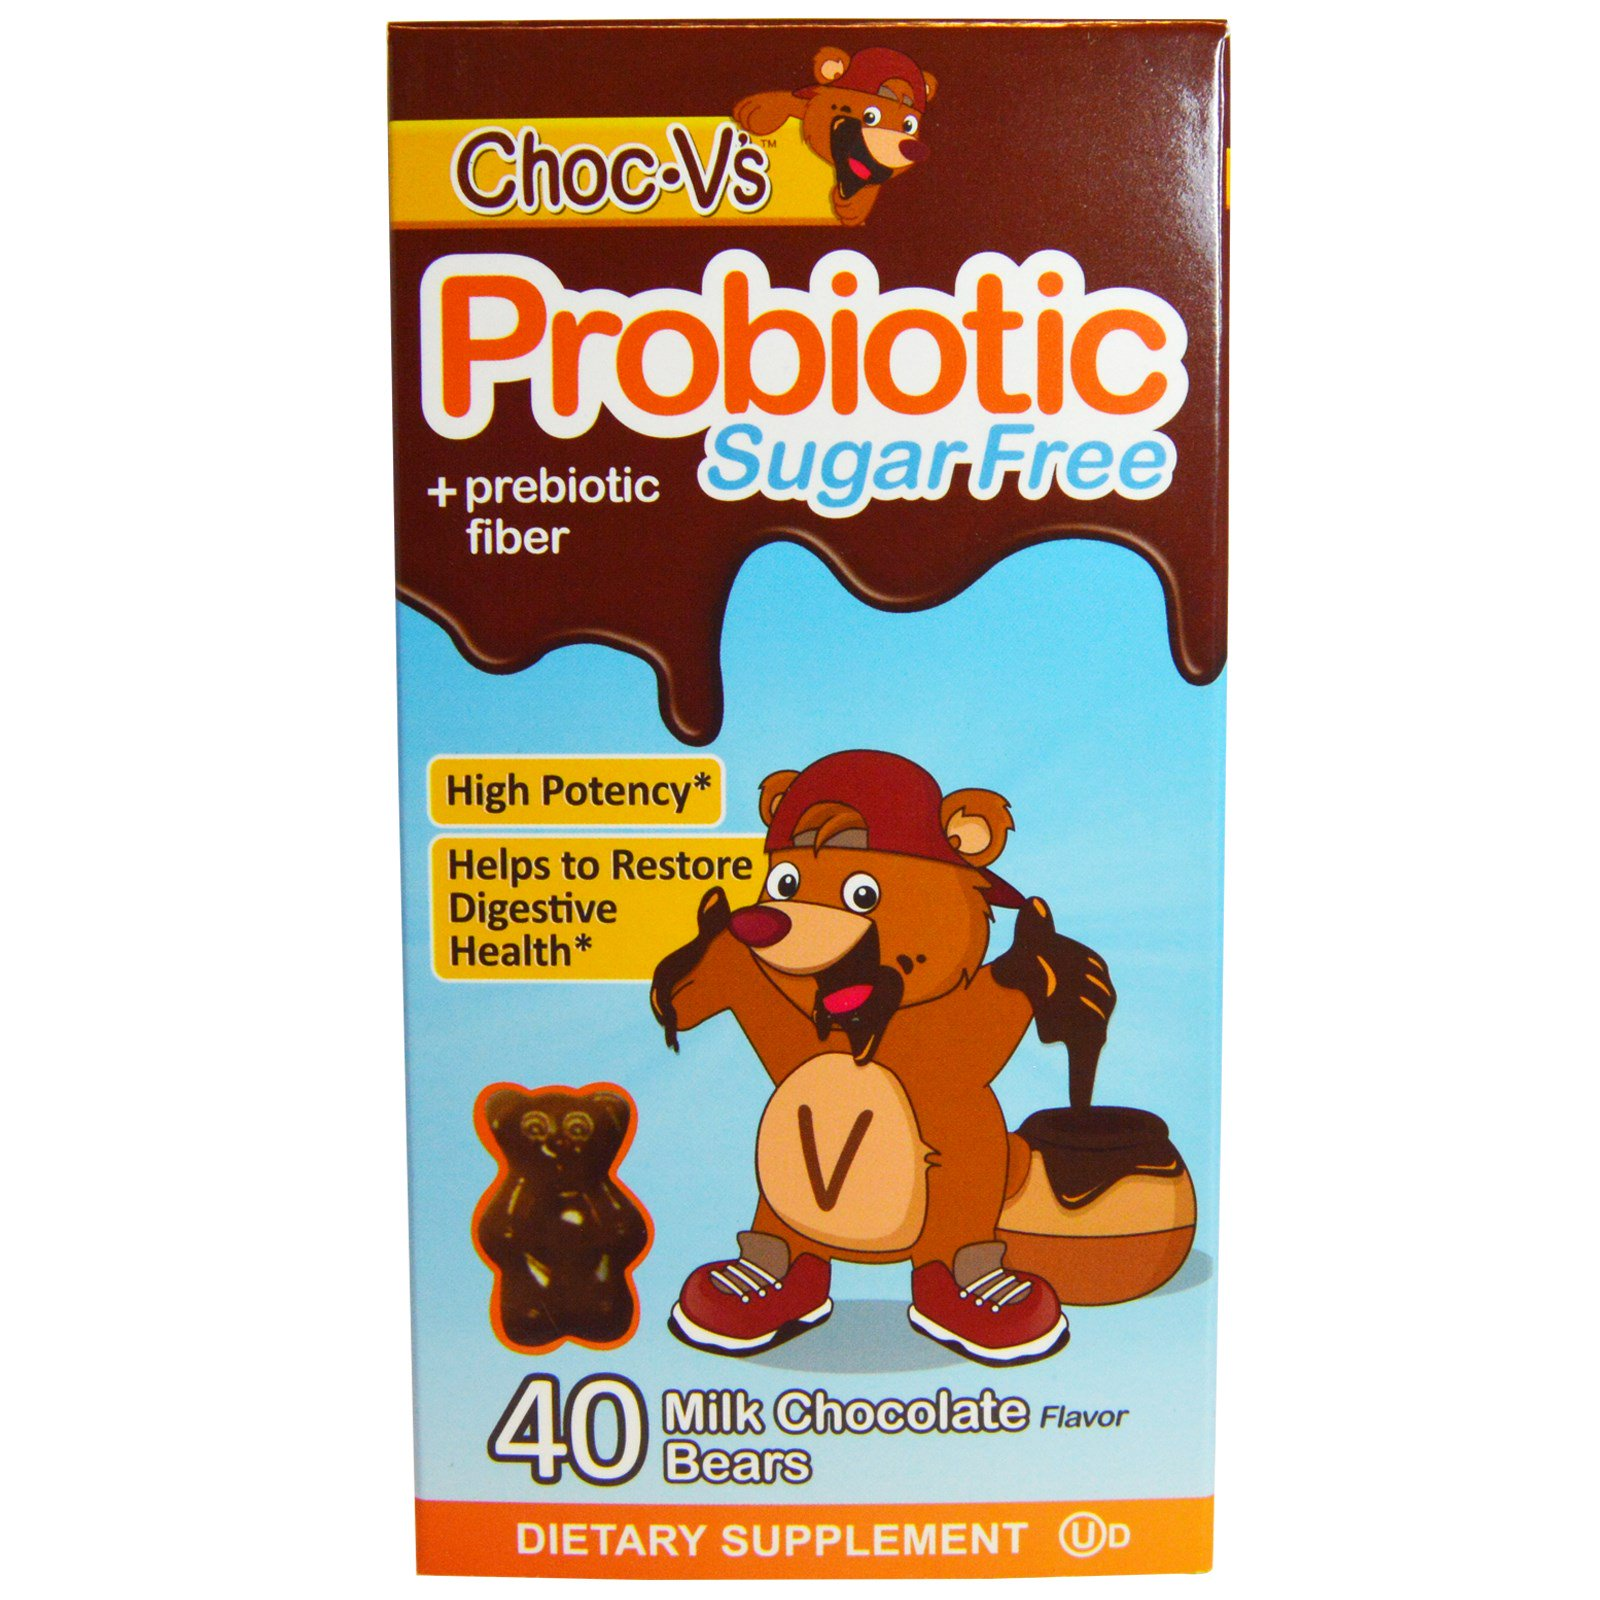 Yum-V's, Probiotic, 1.5 billion microflora